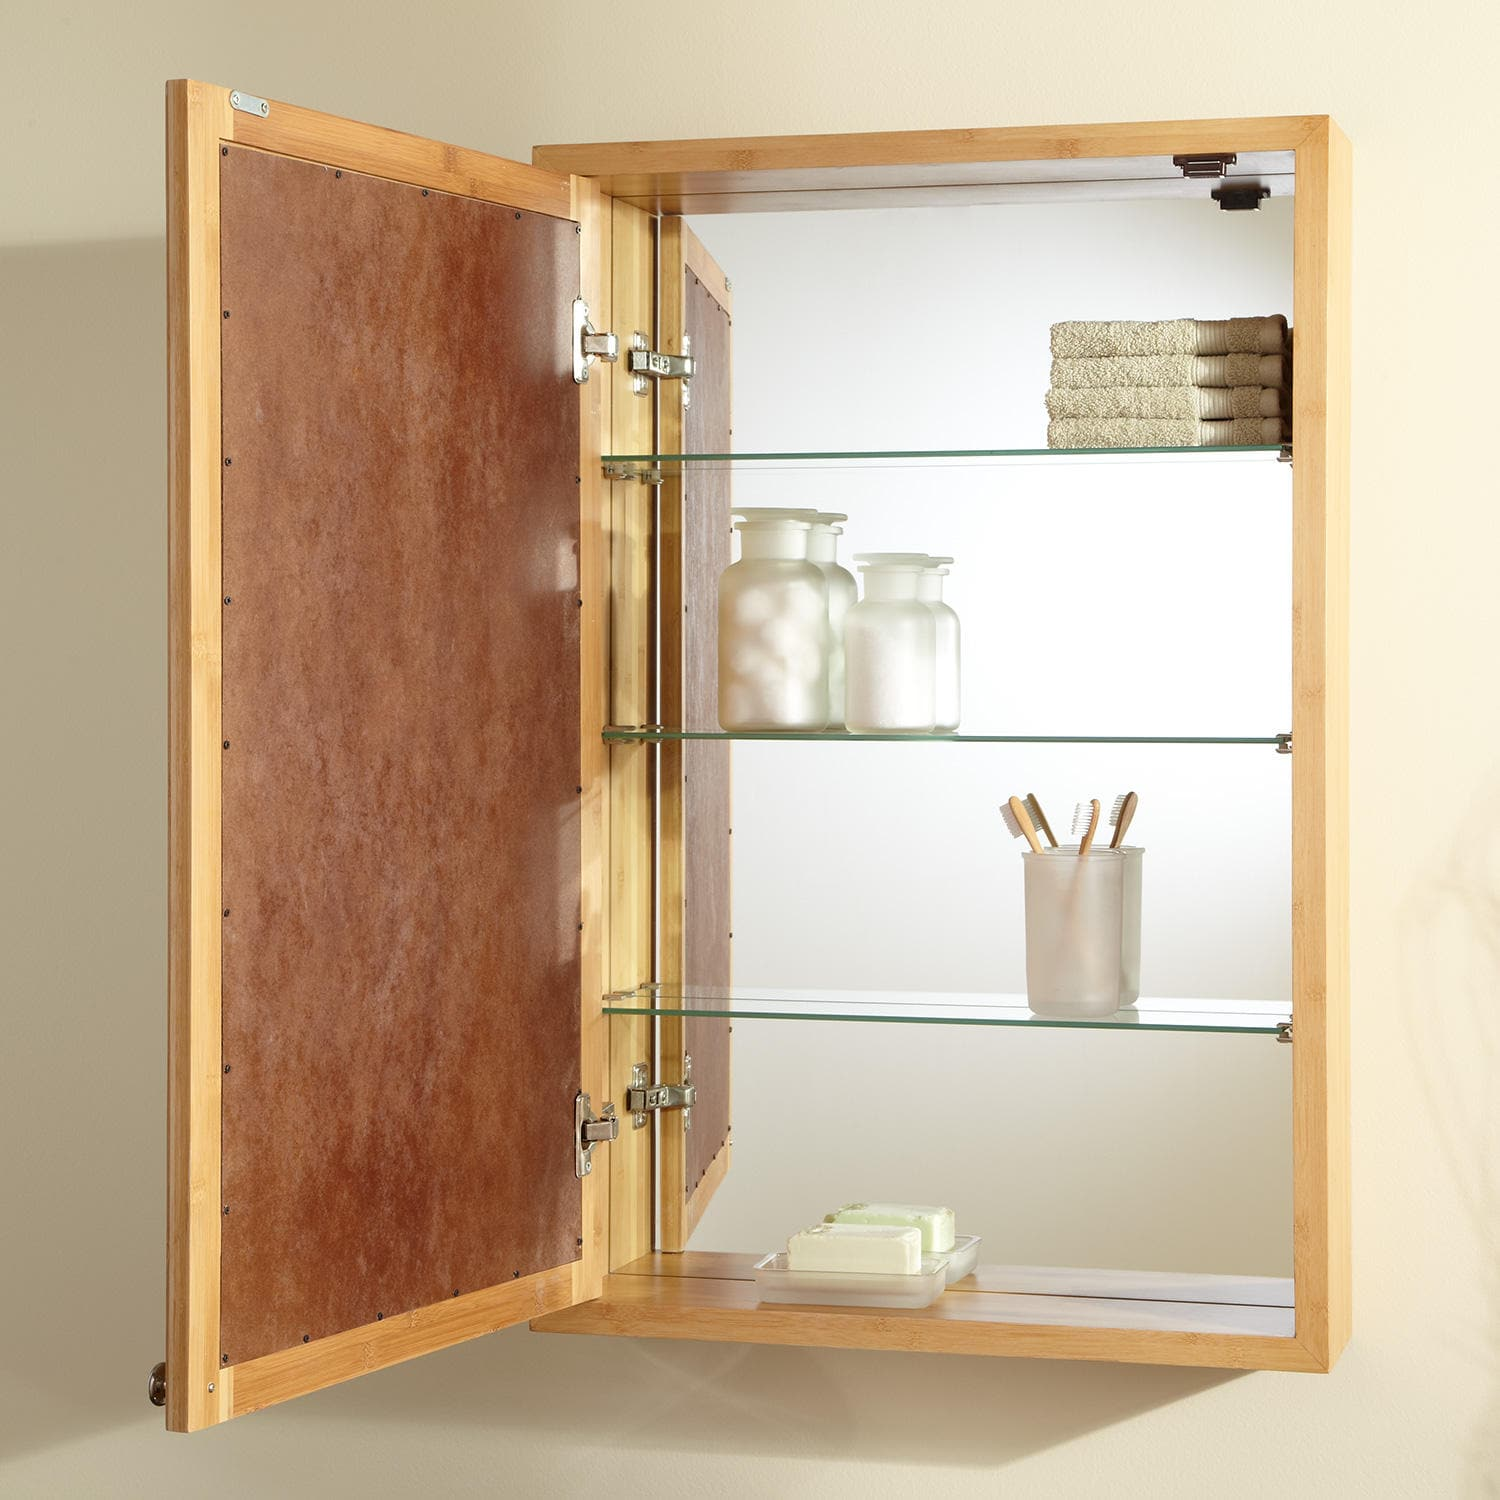 How To Build Wooden Medicine Cabinets